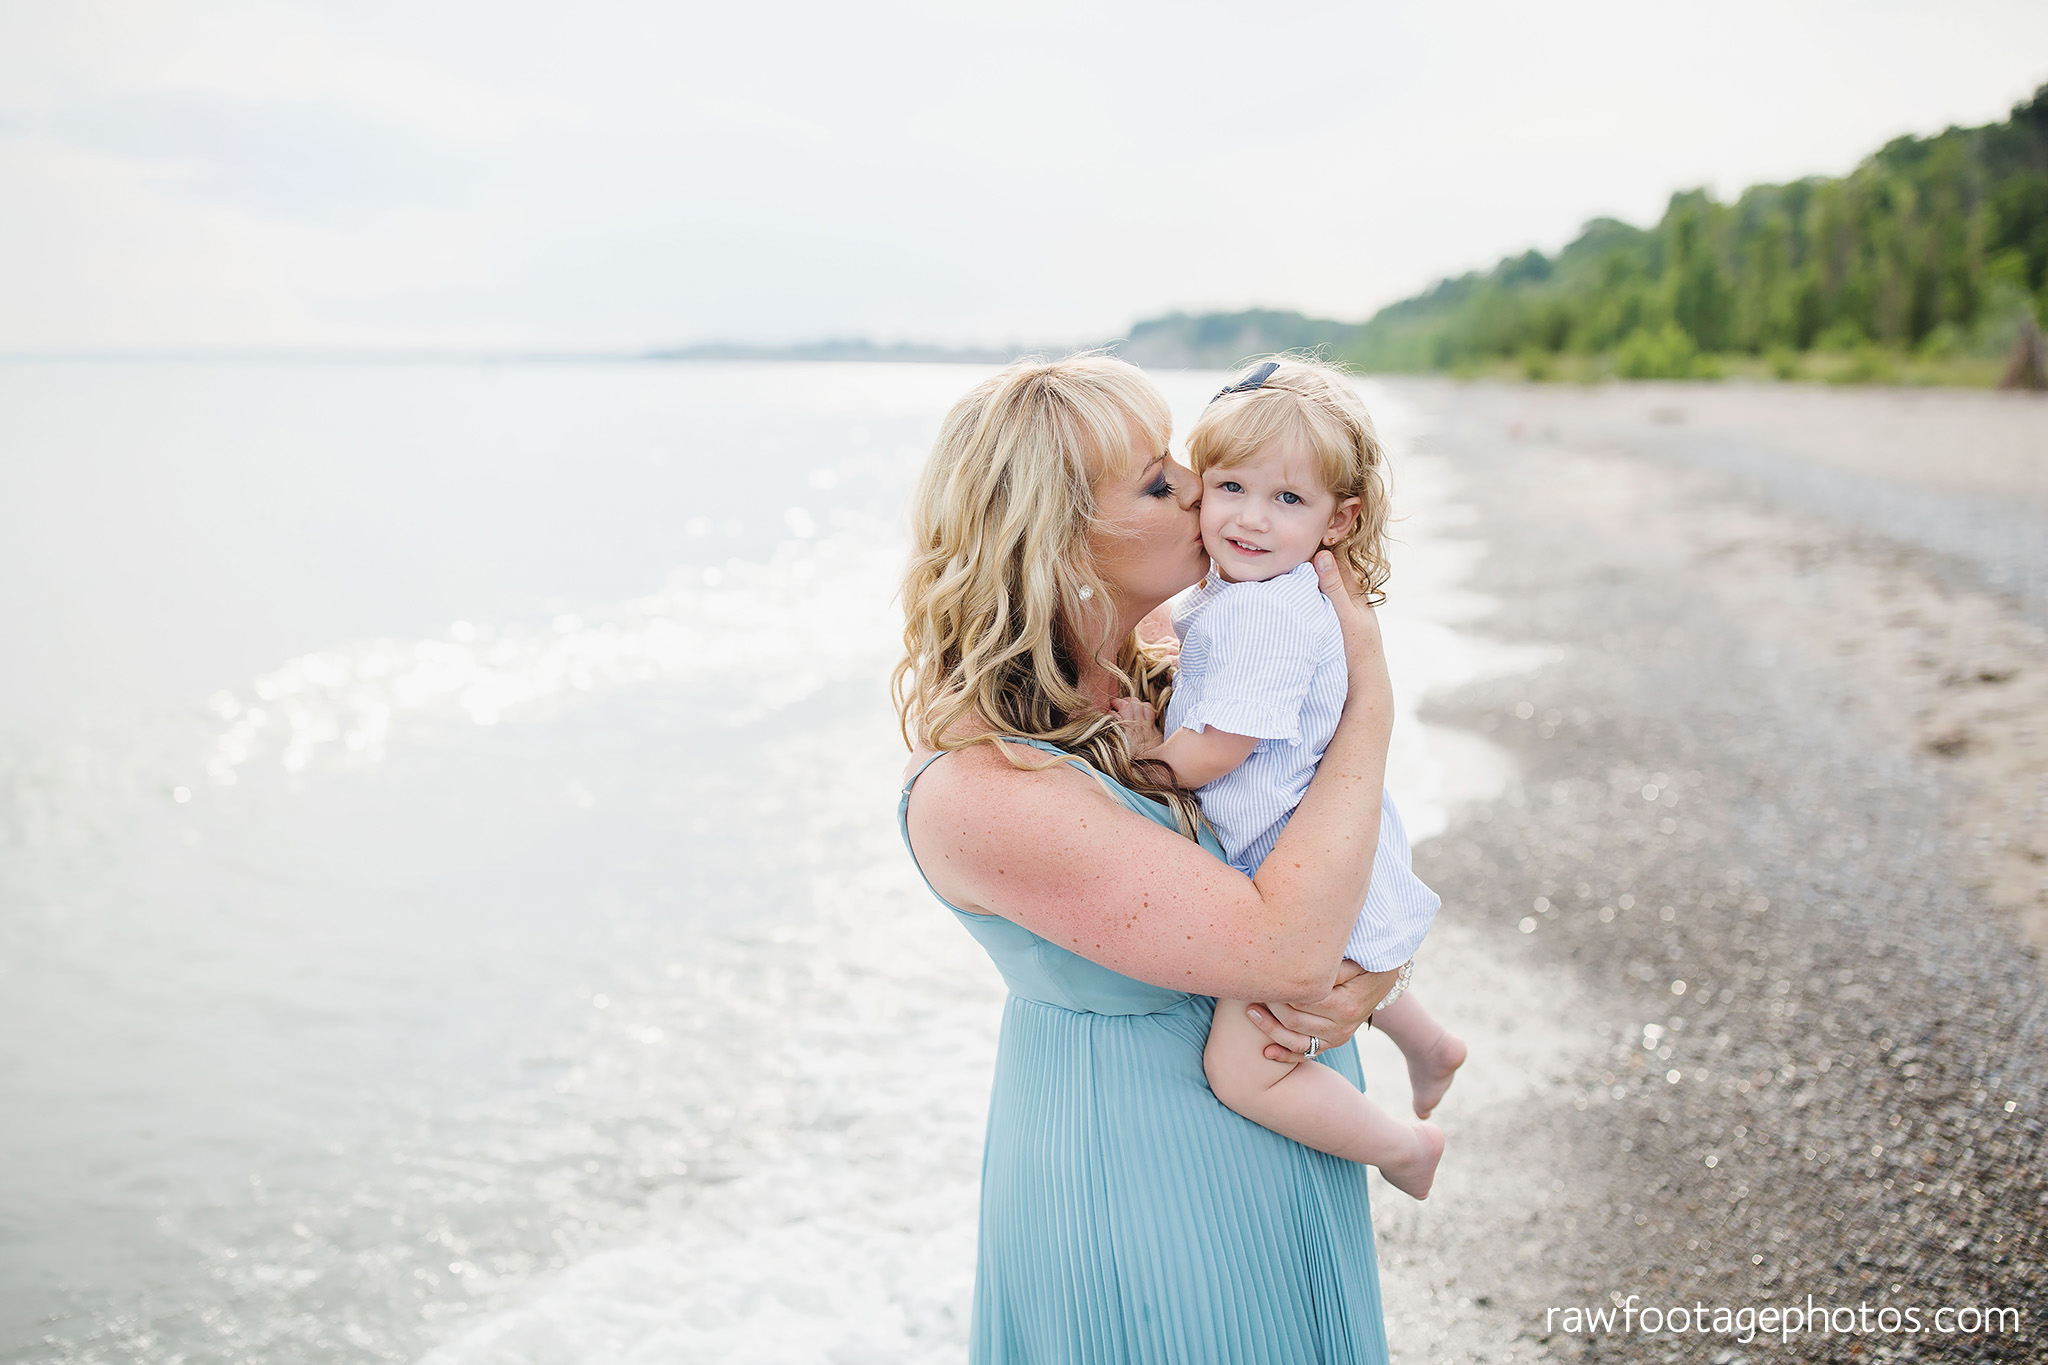 london_ontario_family_photographer-beach_minis-port_stanley_beach-raw_footage_photography020.jpg